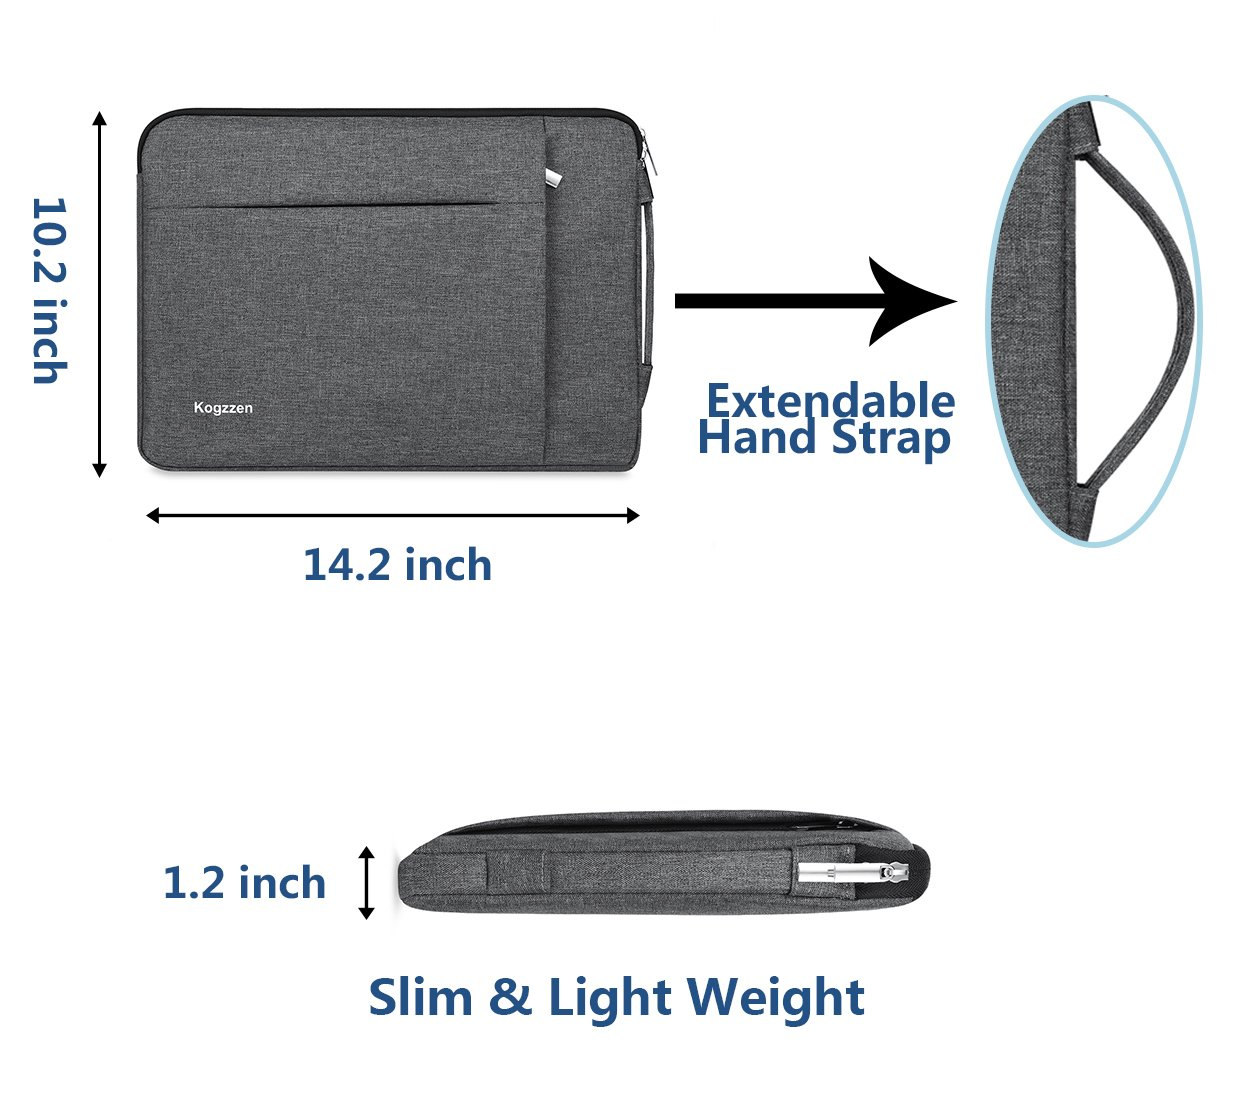 Kogzzen 13-13.5 Inch Laptop Sleeve Shockproof Lightweight Case Carrying Bag Compatible with MacBook Pro 13 inch/MacBook Air 13.3/ Dell XPS 13/ Surface Book 2 13.5/ Surface Laptop/iPad Pro 12.9 - Gray by Kogzzen (Image #4)